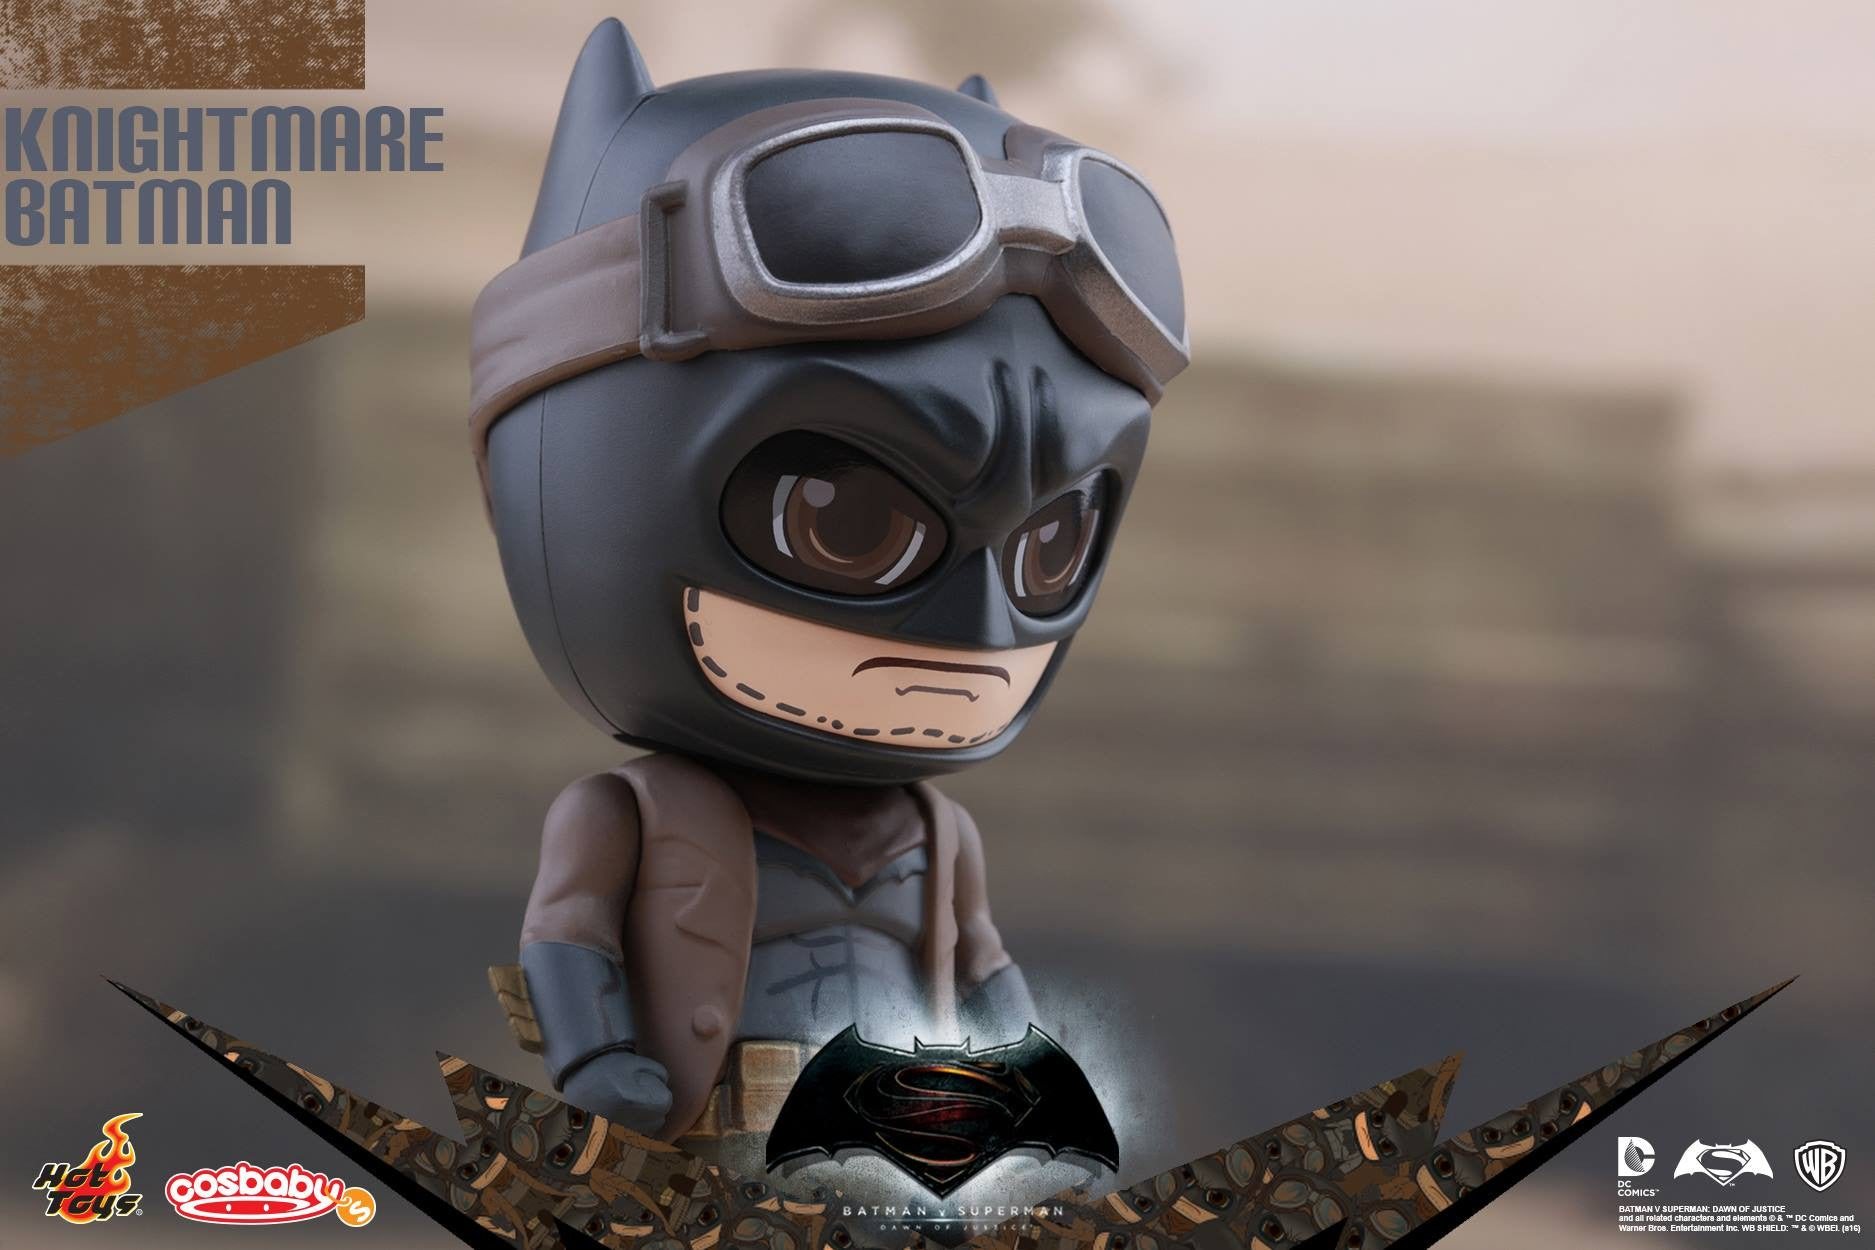 Knightmare Batman Cosbaby Collectible COSB226 - Batman v Superman: Dawn Of Justice - Hot Toys - Marvelous Toys - 3